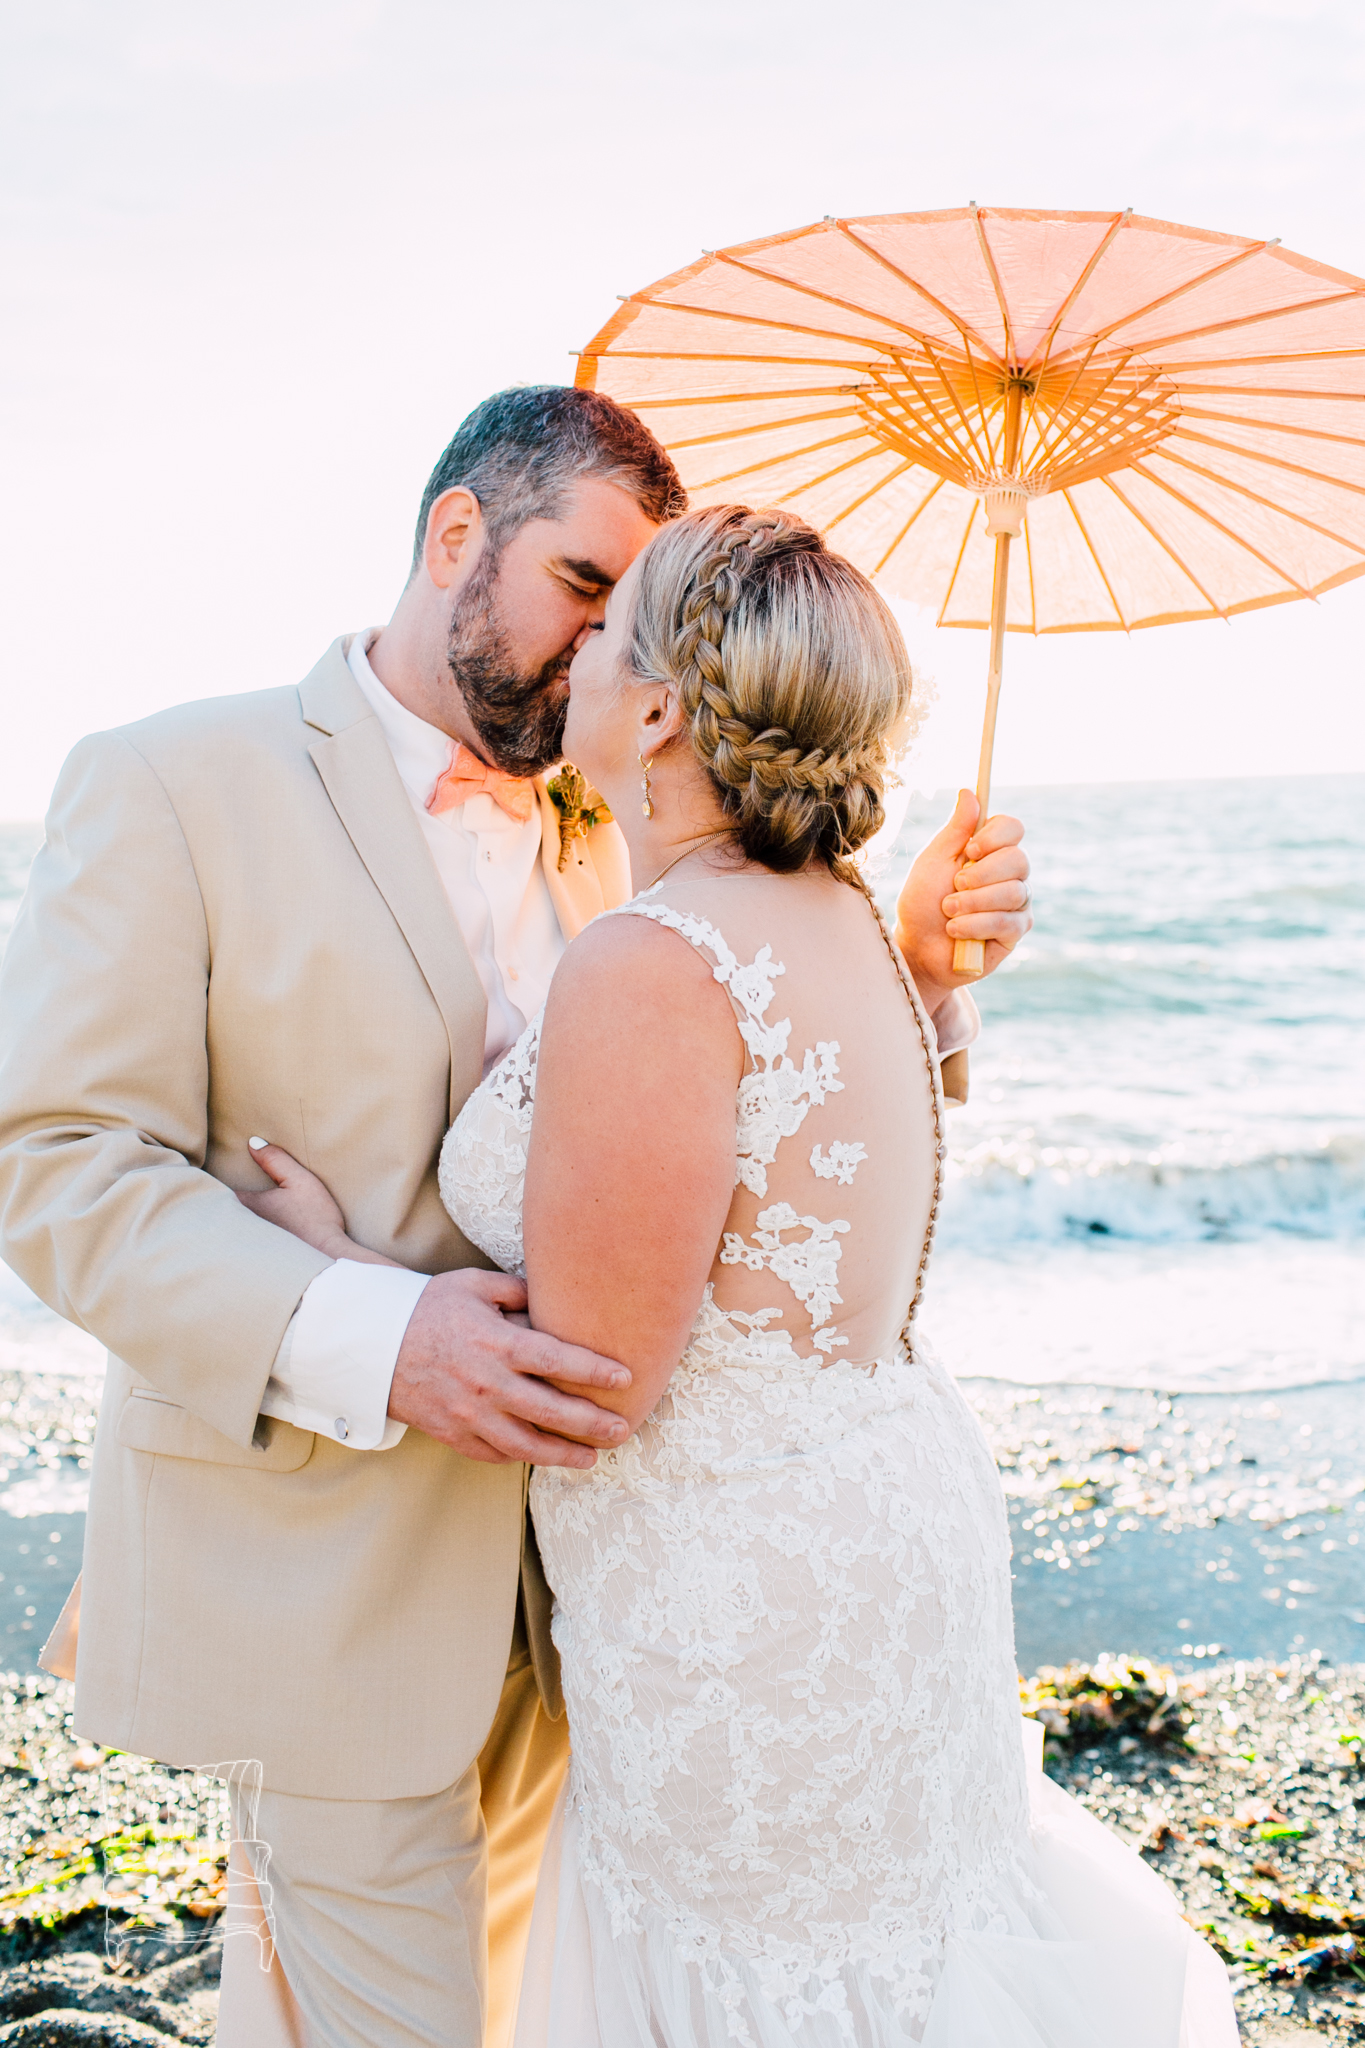 elisa-phillip-beach-wedding-bellingham-katheryn-moran-13.jpg